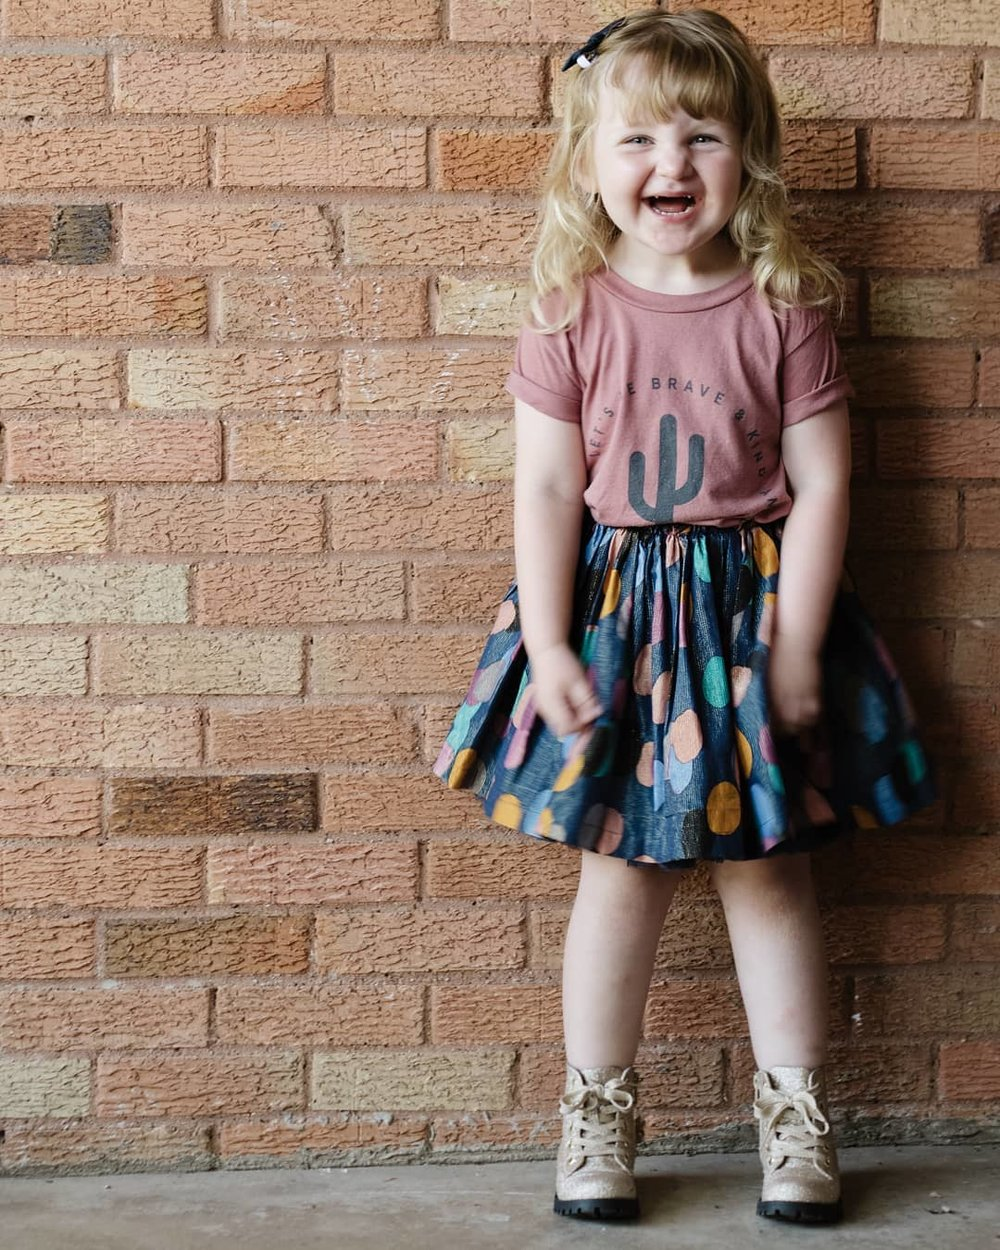 Children - Hipster Baby - Because chances are, that kiddo in your life can always use some fun new clothes.Peek Kids - Shop playfully-inspired designer clothes with sizing available from newborn to ~12 years old.KidBiz - Keep your kiddo looking sharp with unisex fashion-forward pieces, from newborn to Size 16.